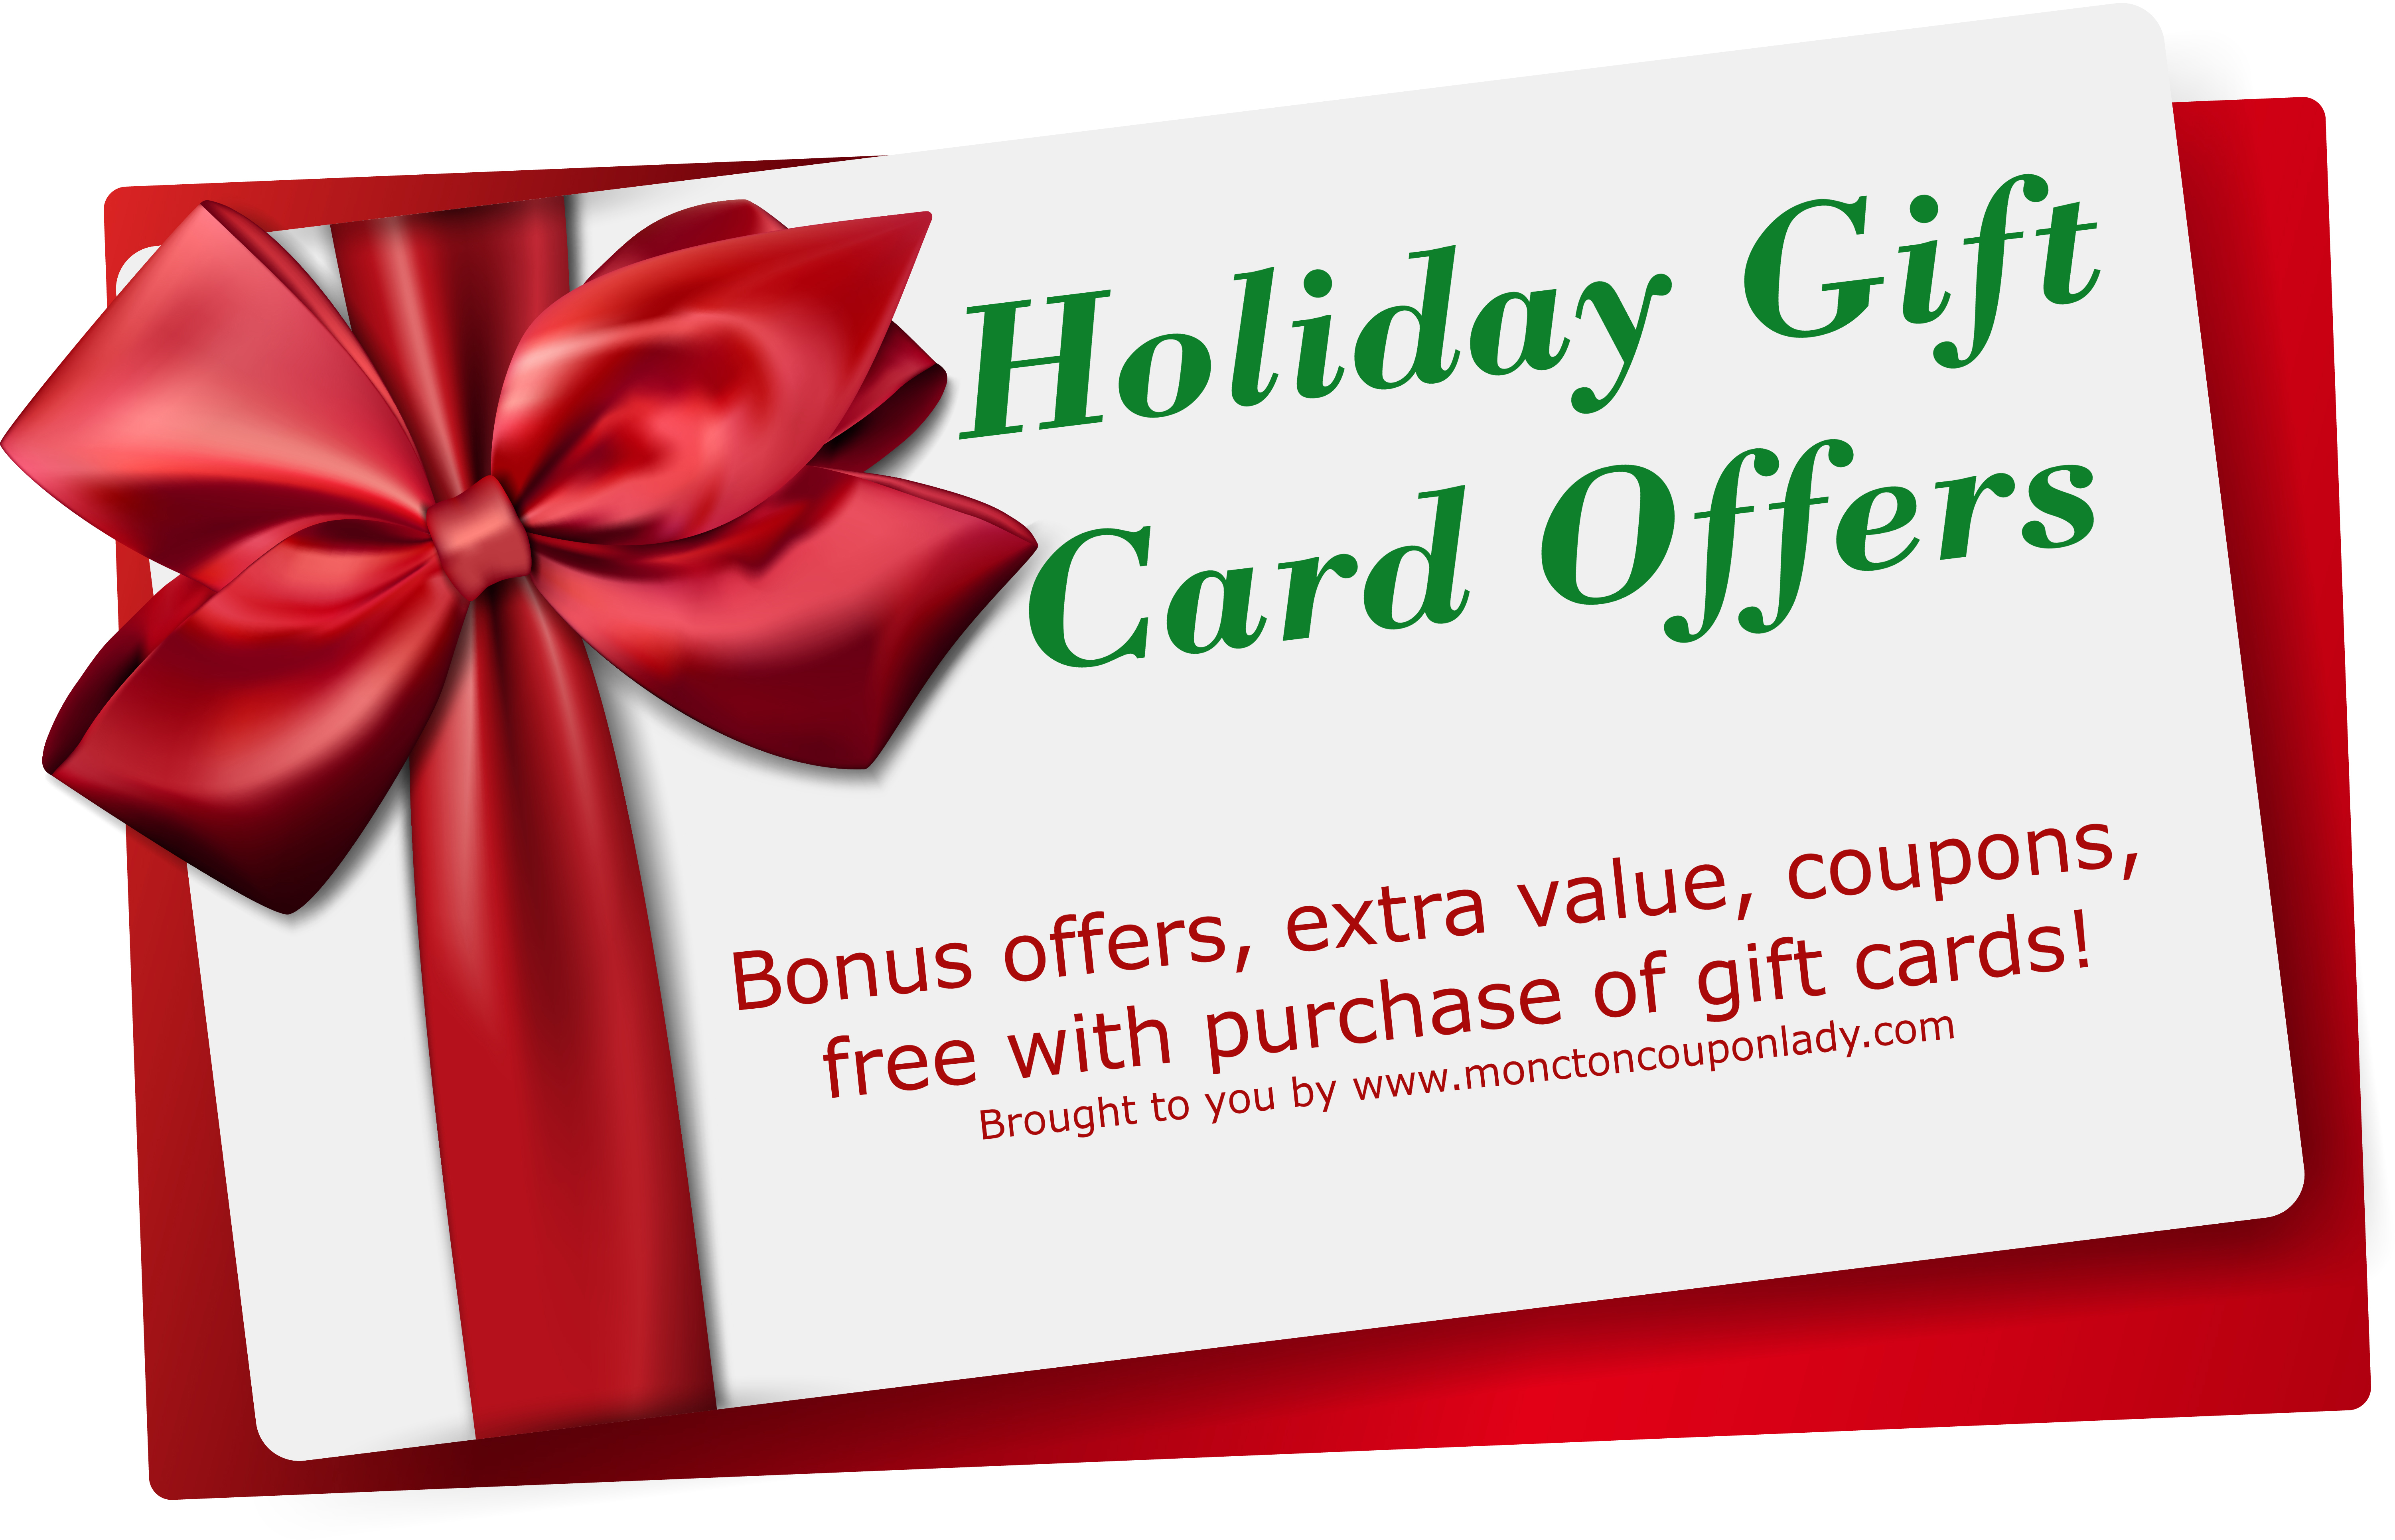 Gift card holiday offers